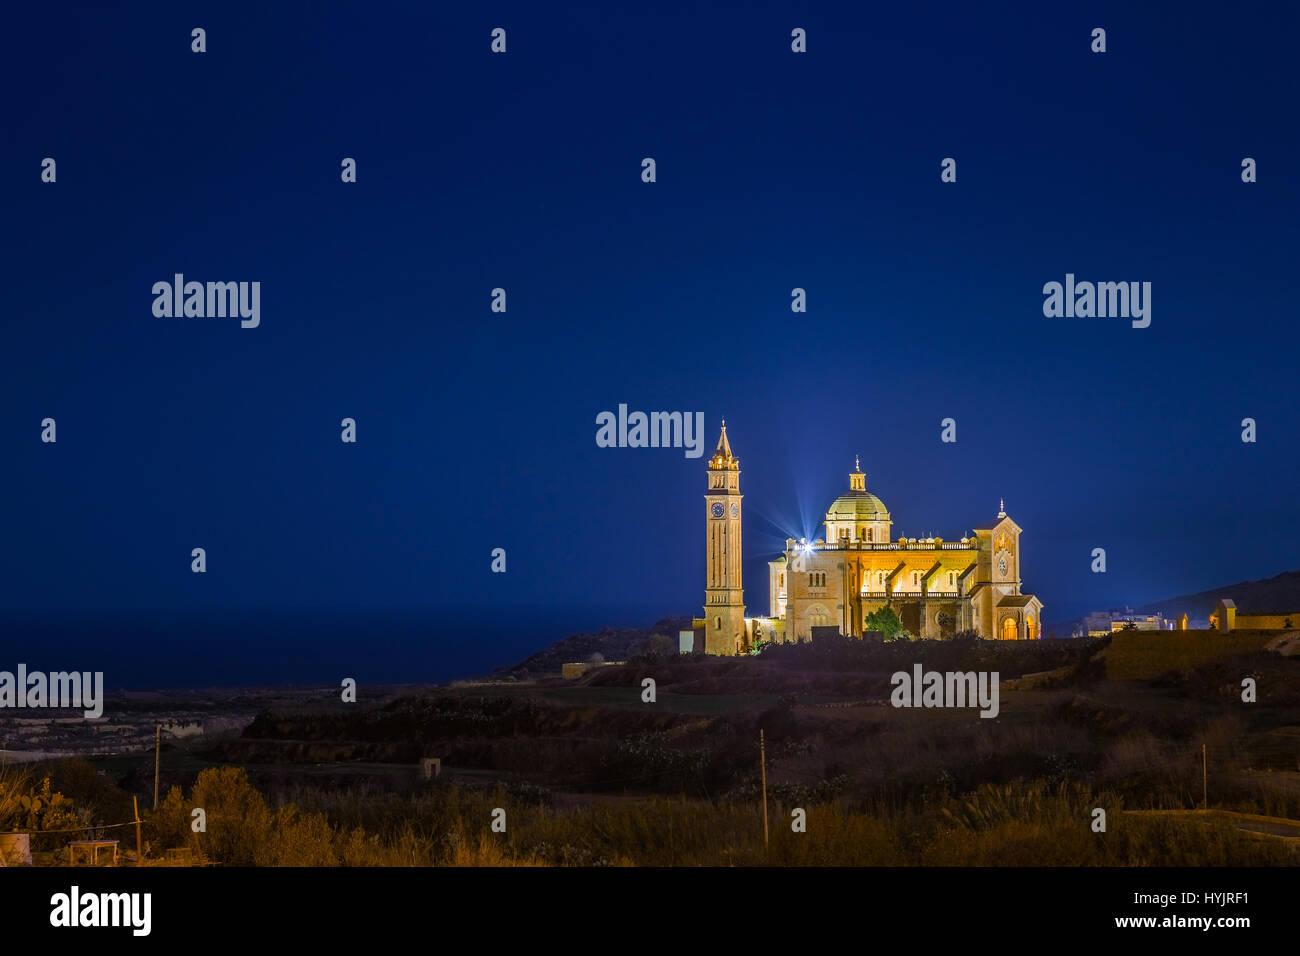 Gozo, Malta - The Basilica of the National Shrine of the Blessed Virgin of Ta' Pinu at night with clear starry - Stock Image